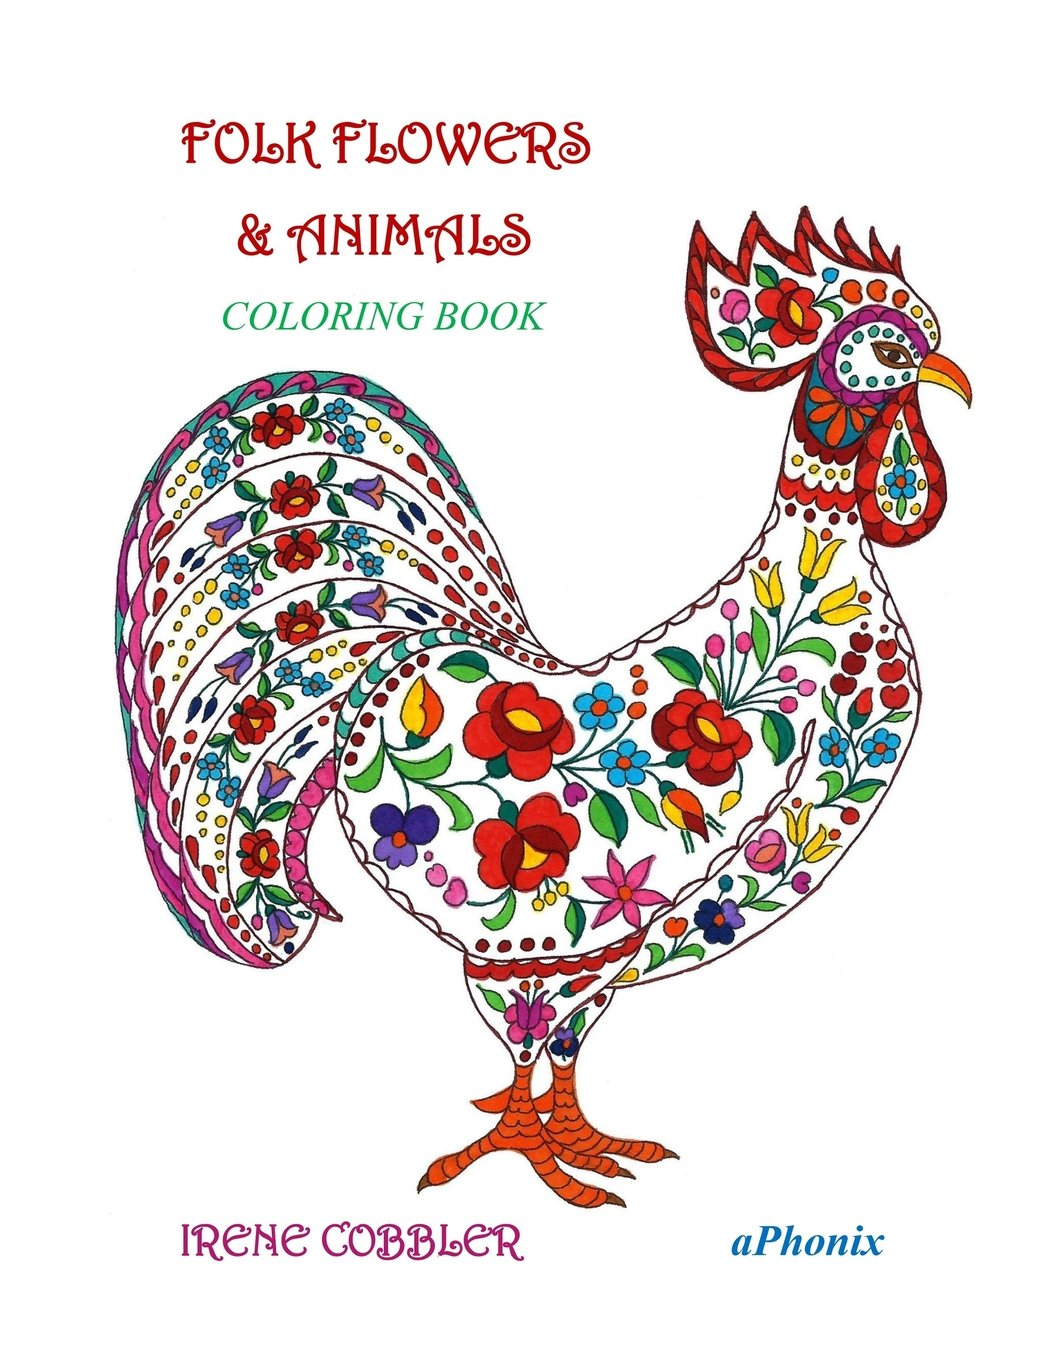 Folk flowers & Animals: Coloring book